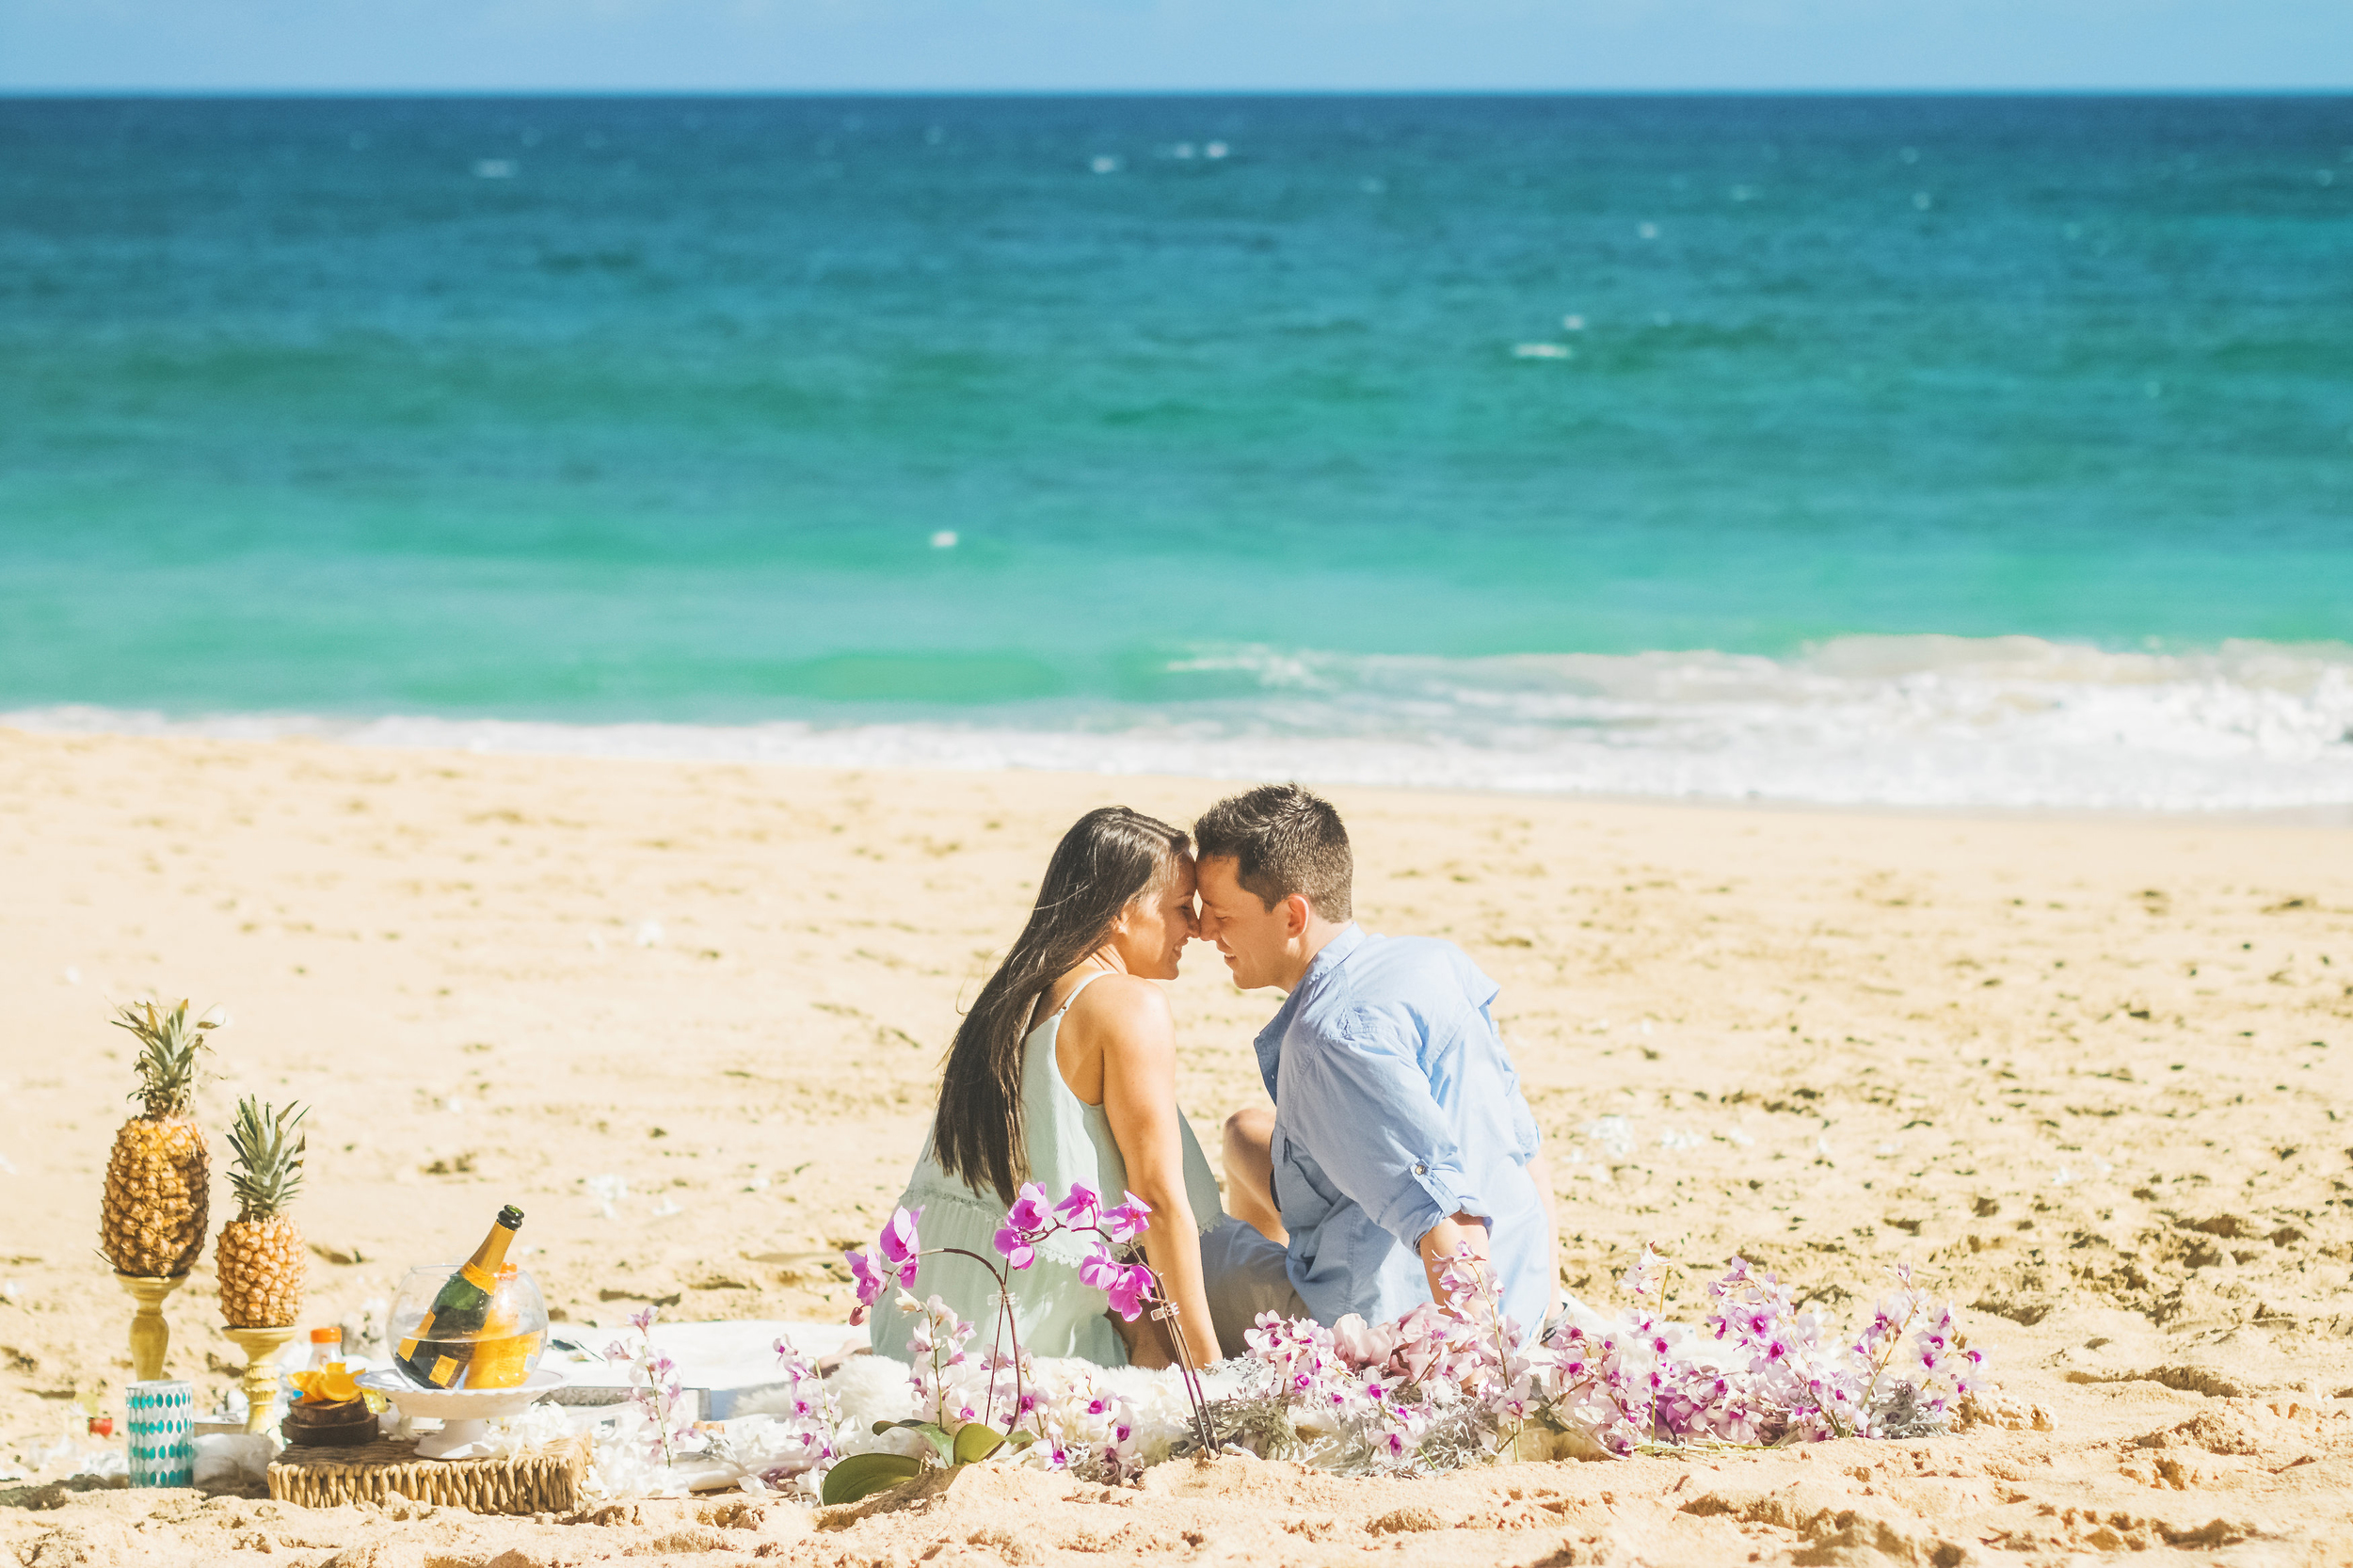 angie-diaz-photography-maui-proposal-baldwin-beach-aimee-tyler-17.jpg